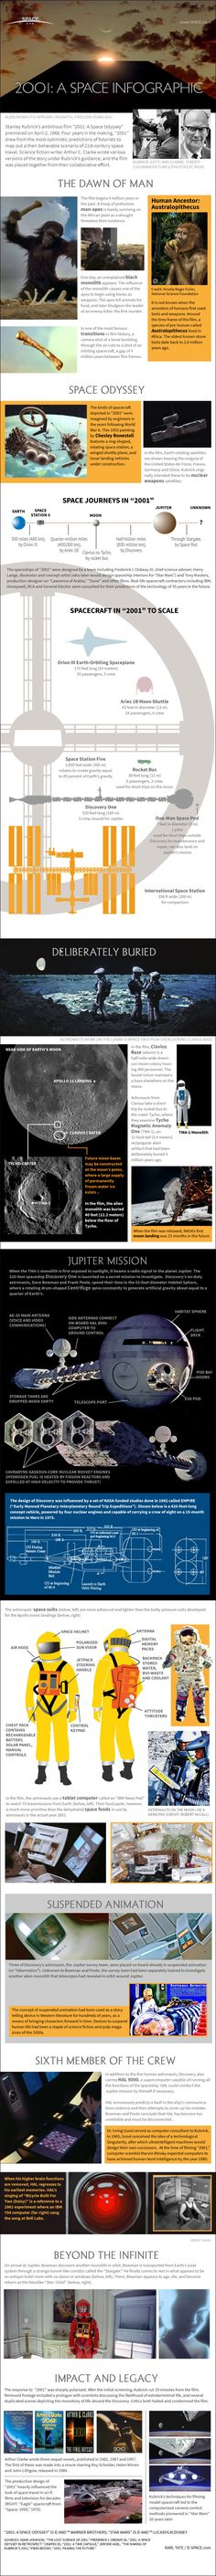 """A Look Back at Stanley Kubrick's """"2001: A Space Odyssey"""" (Infographic) 